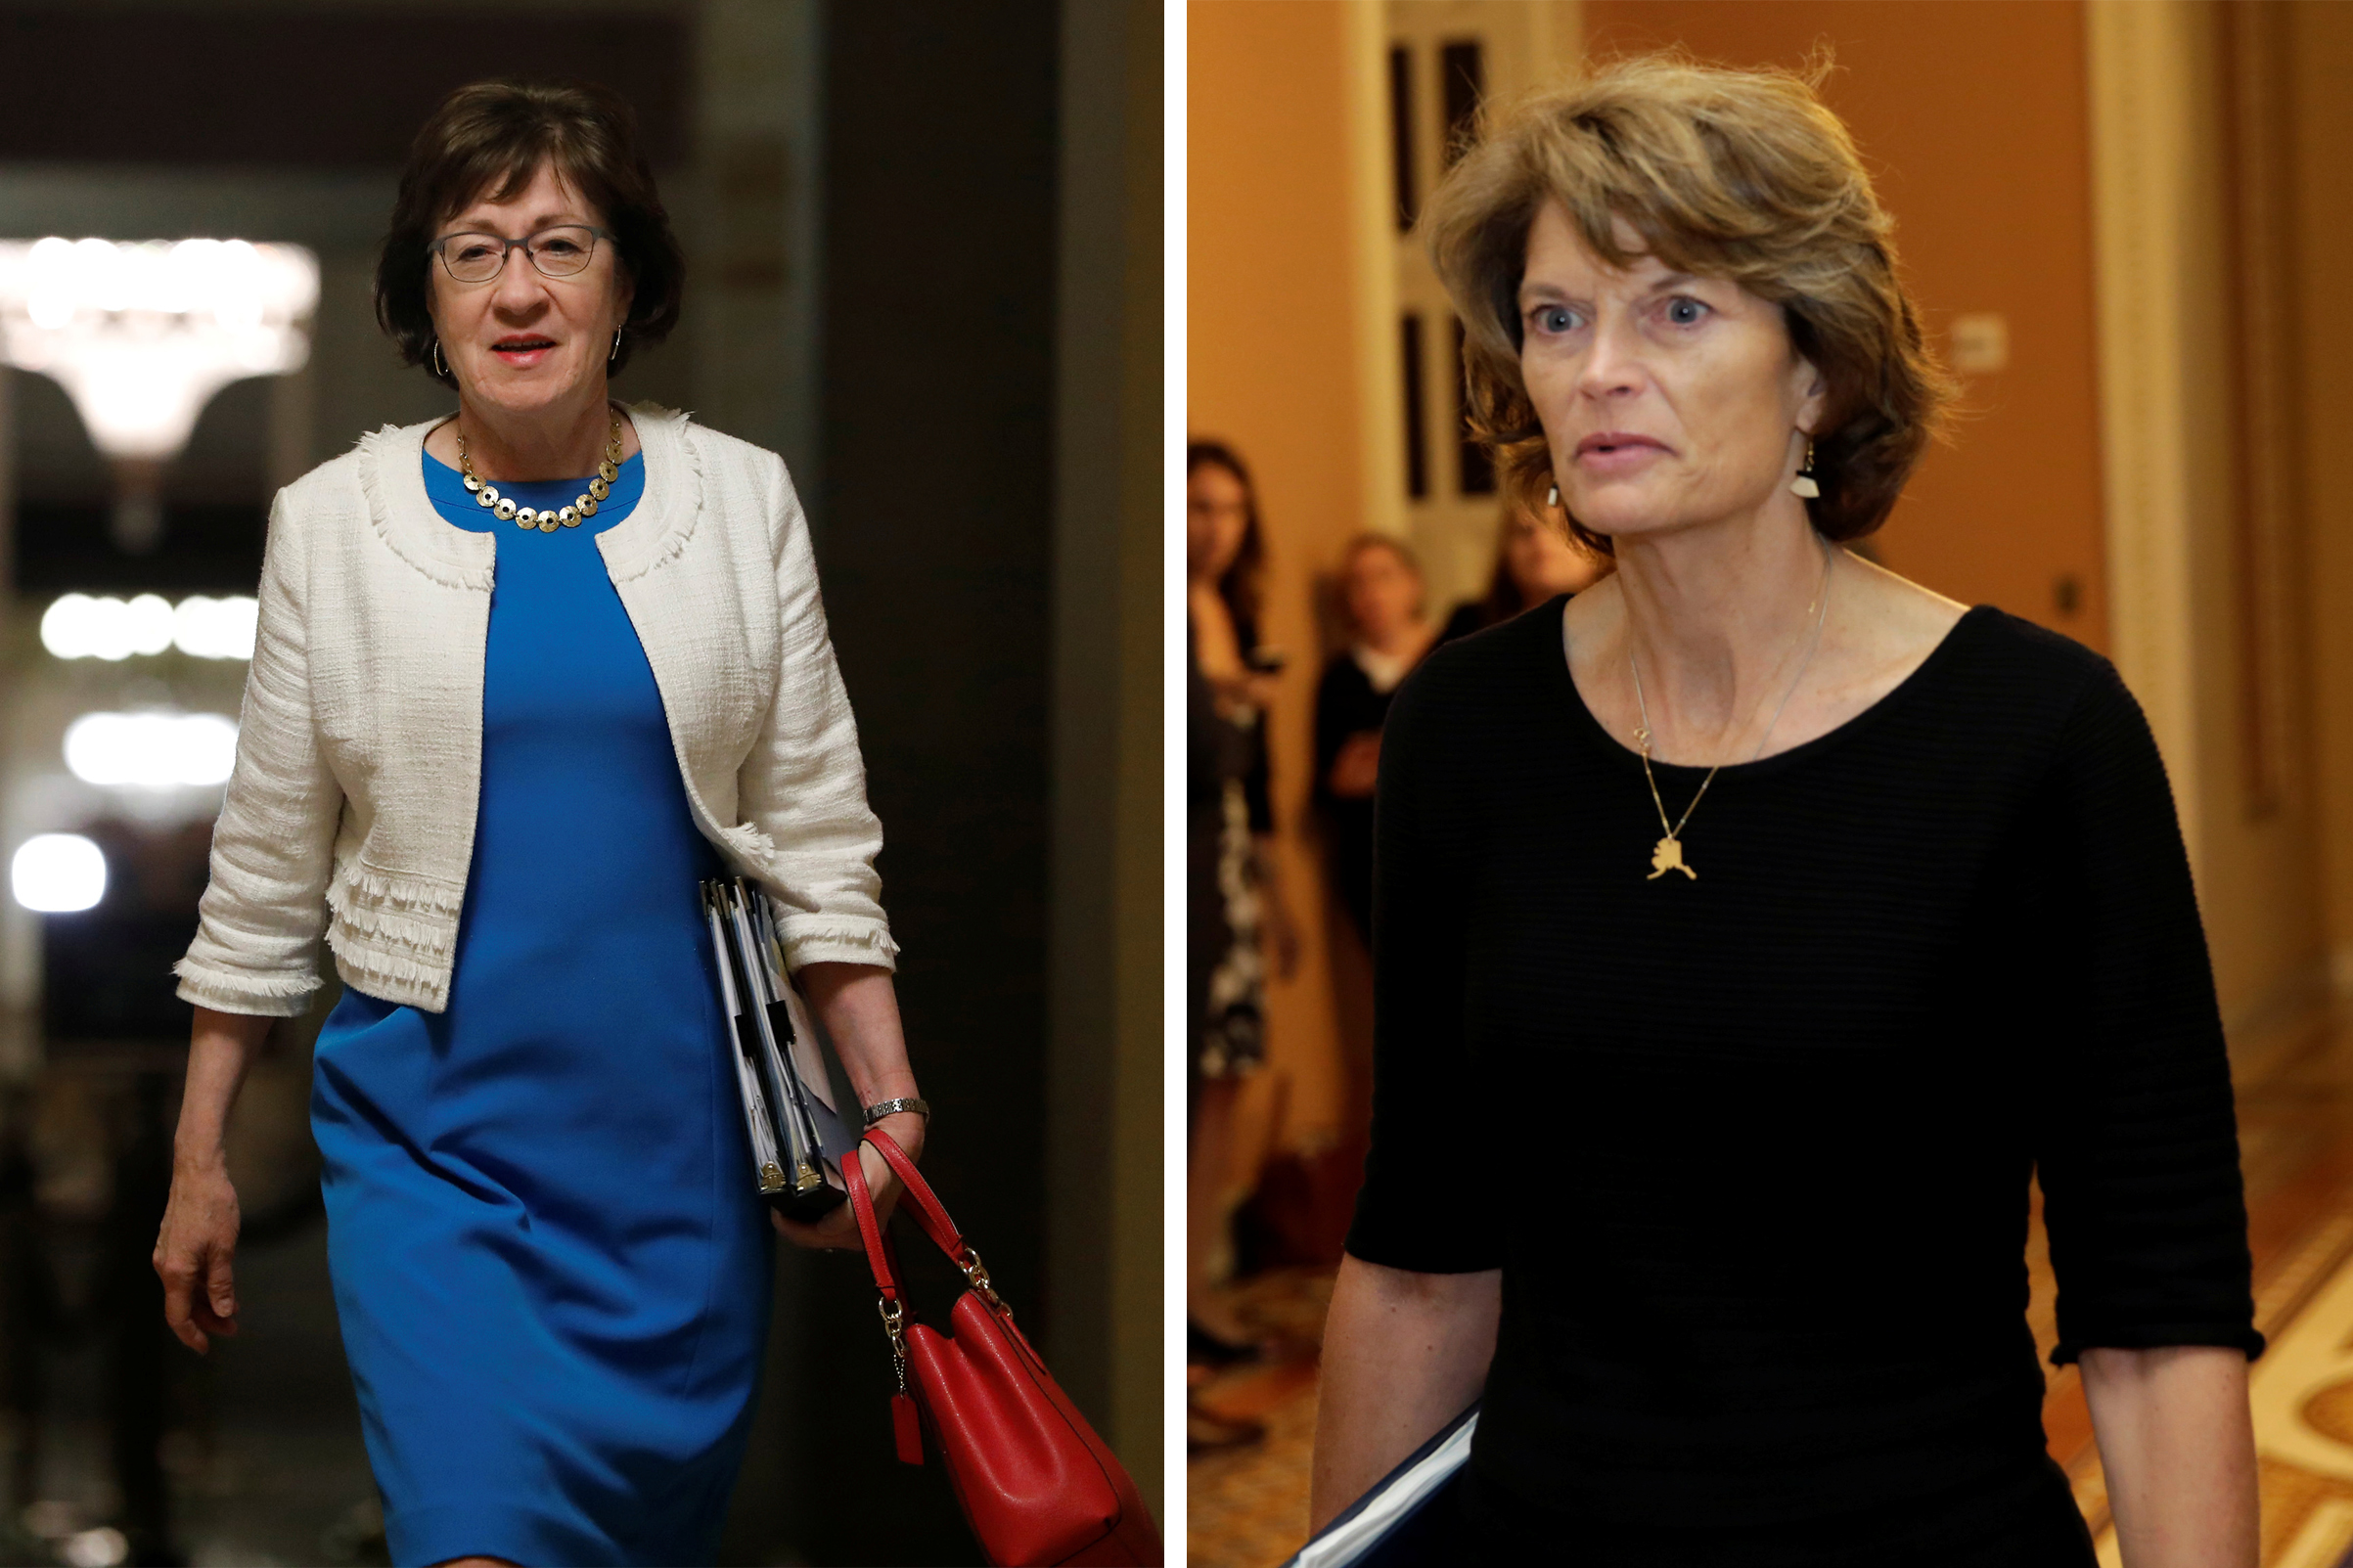 Senator Susan Collins (R-ME) and Senator Lisa Murkowski (R-AK) walk to the Senate floor to vote on the health care bill on Capitol Hill on July 27, 2017.